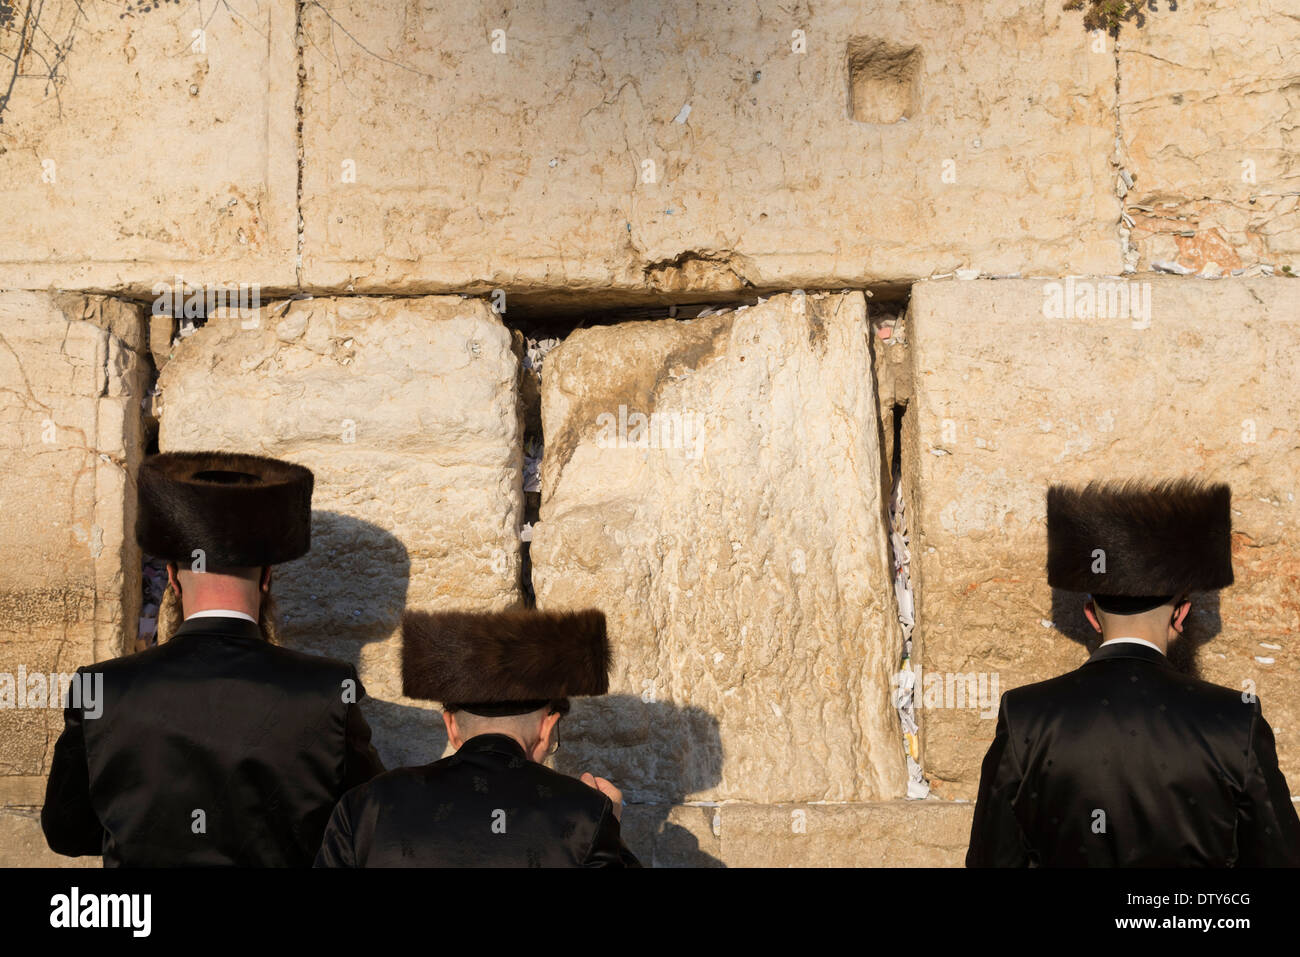 Three orthodox Jews with Shtreimel hats praying at the Western Wall.Jerusalem Old City. Israel. - Stock Image